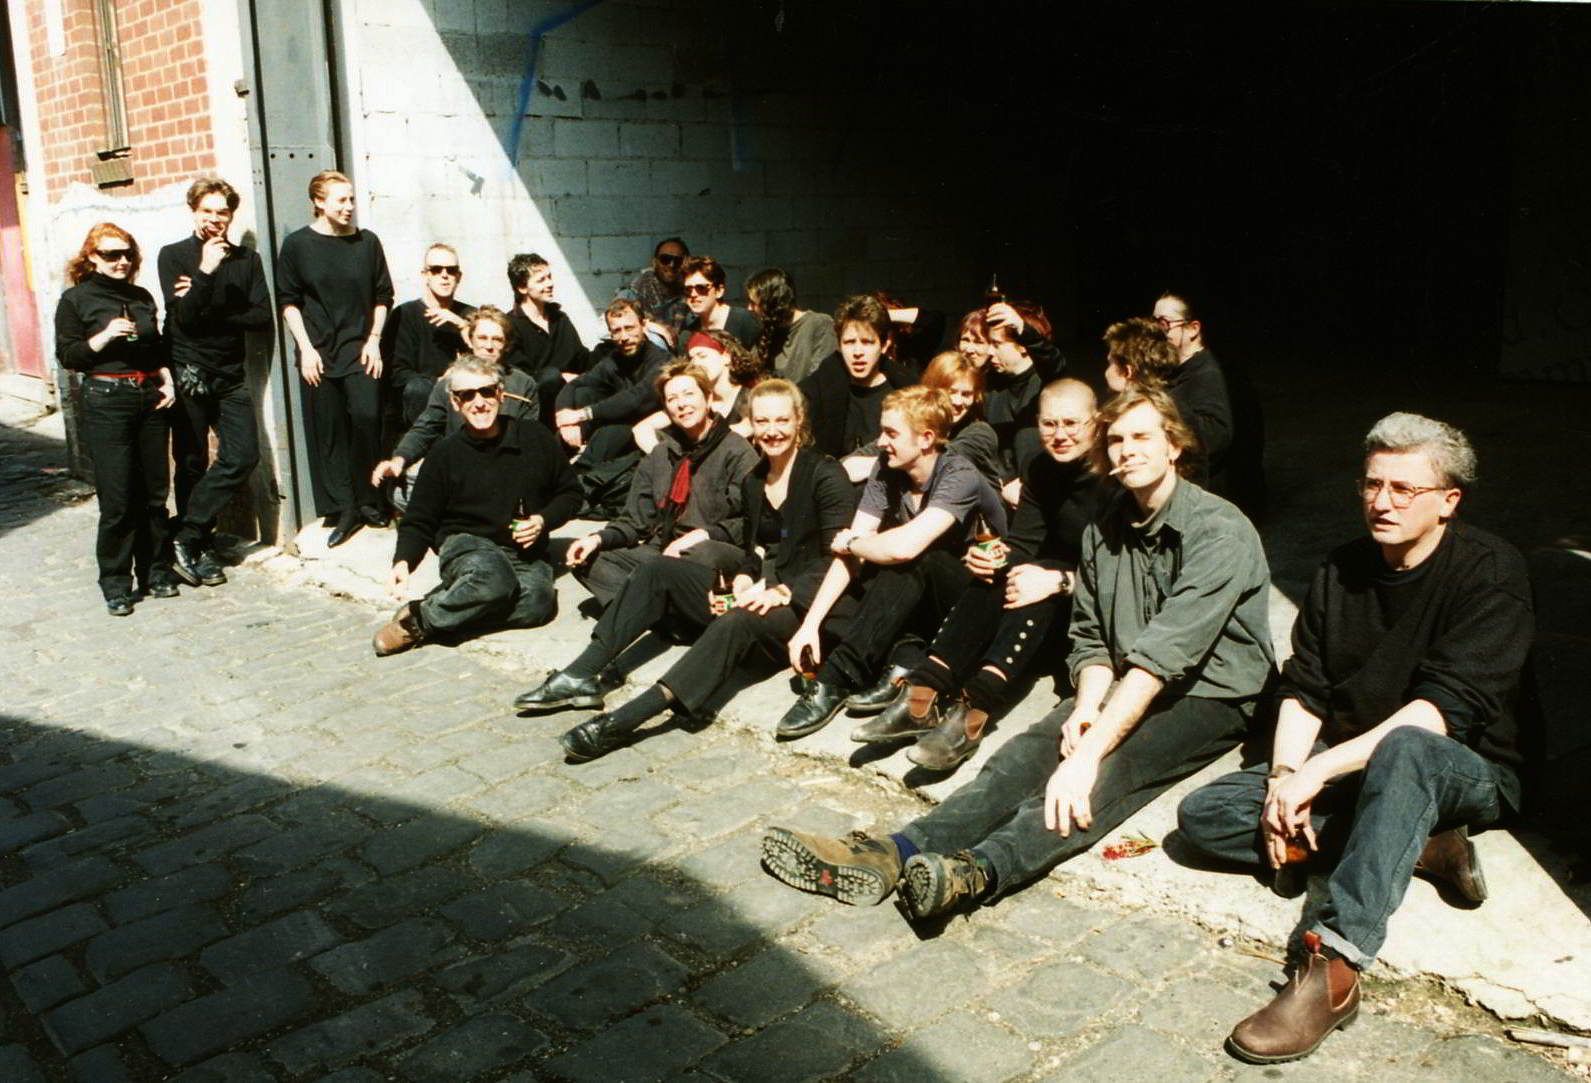 group portrait of performers sitting in a cobbled laneway